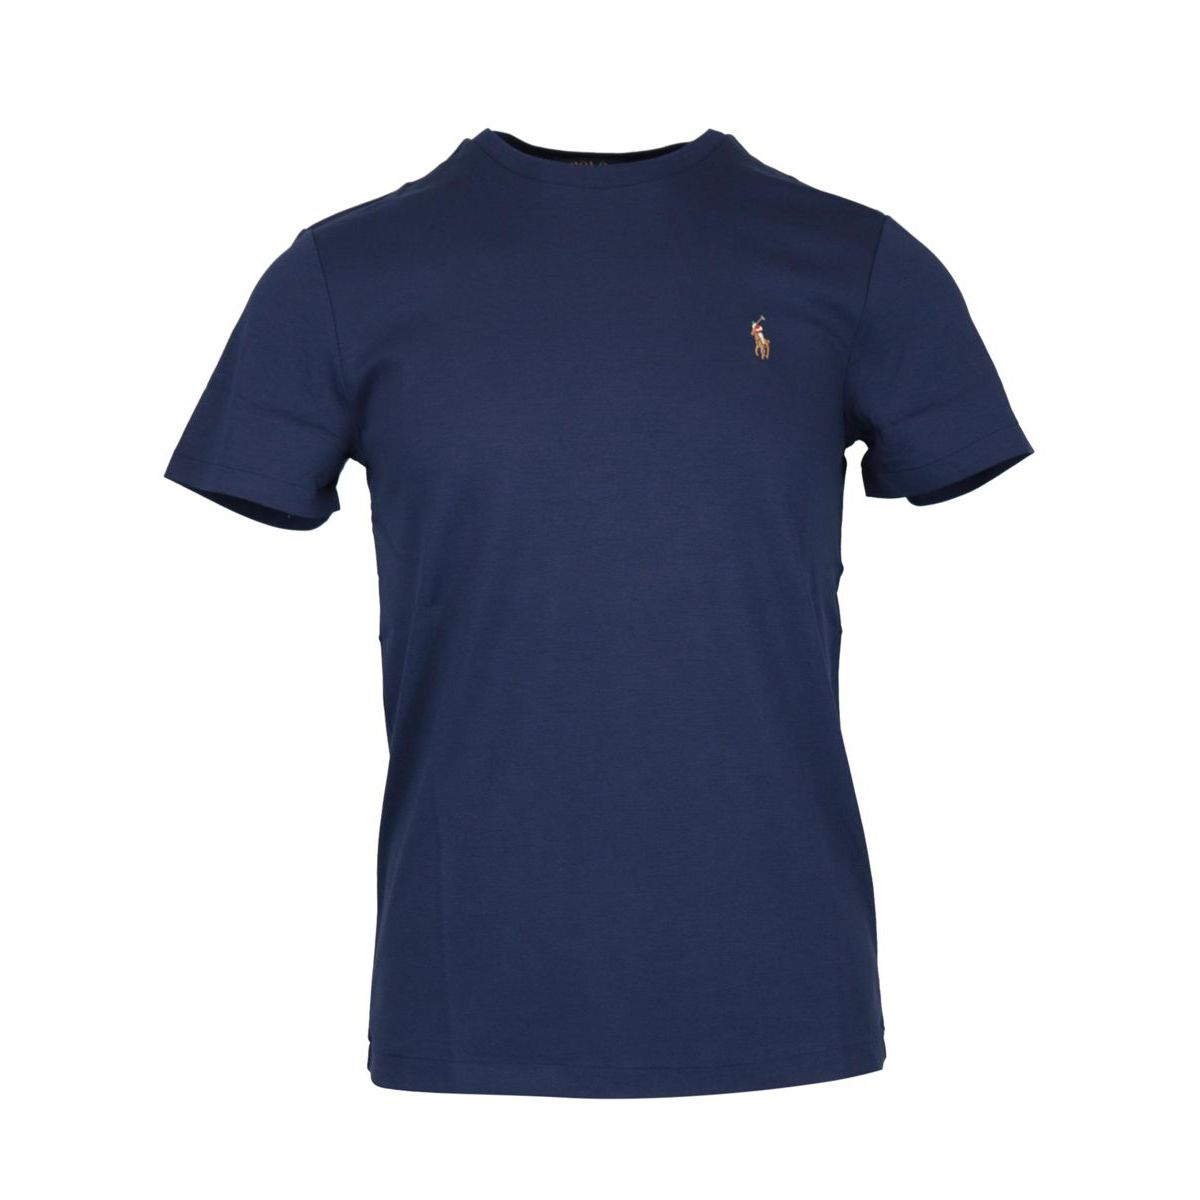 Crew neck t-shirt in cotton jersey with logo embroidery Navy Polo Ralph Lauren